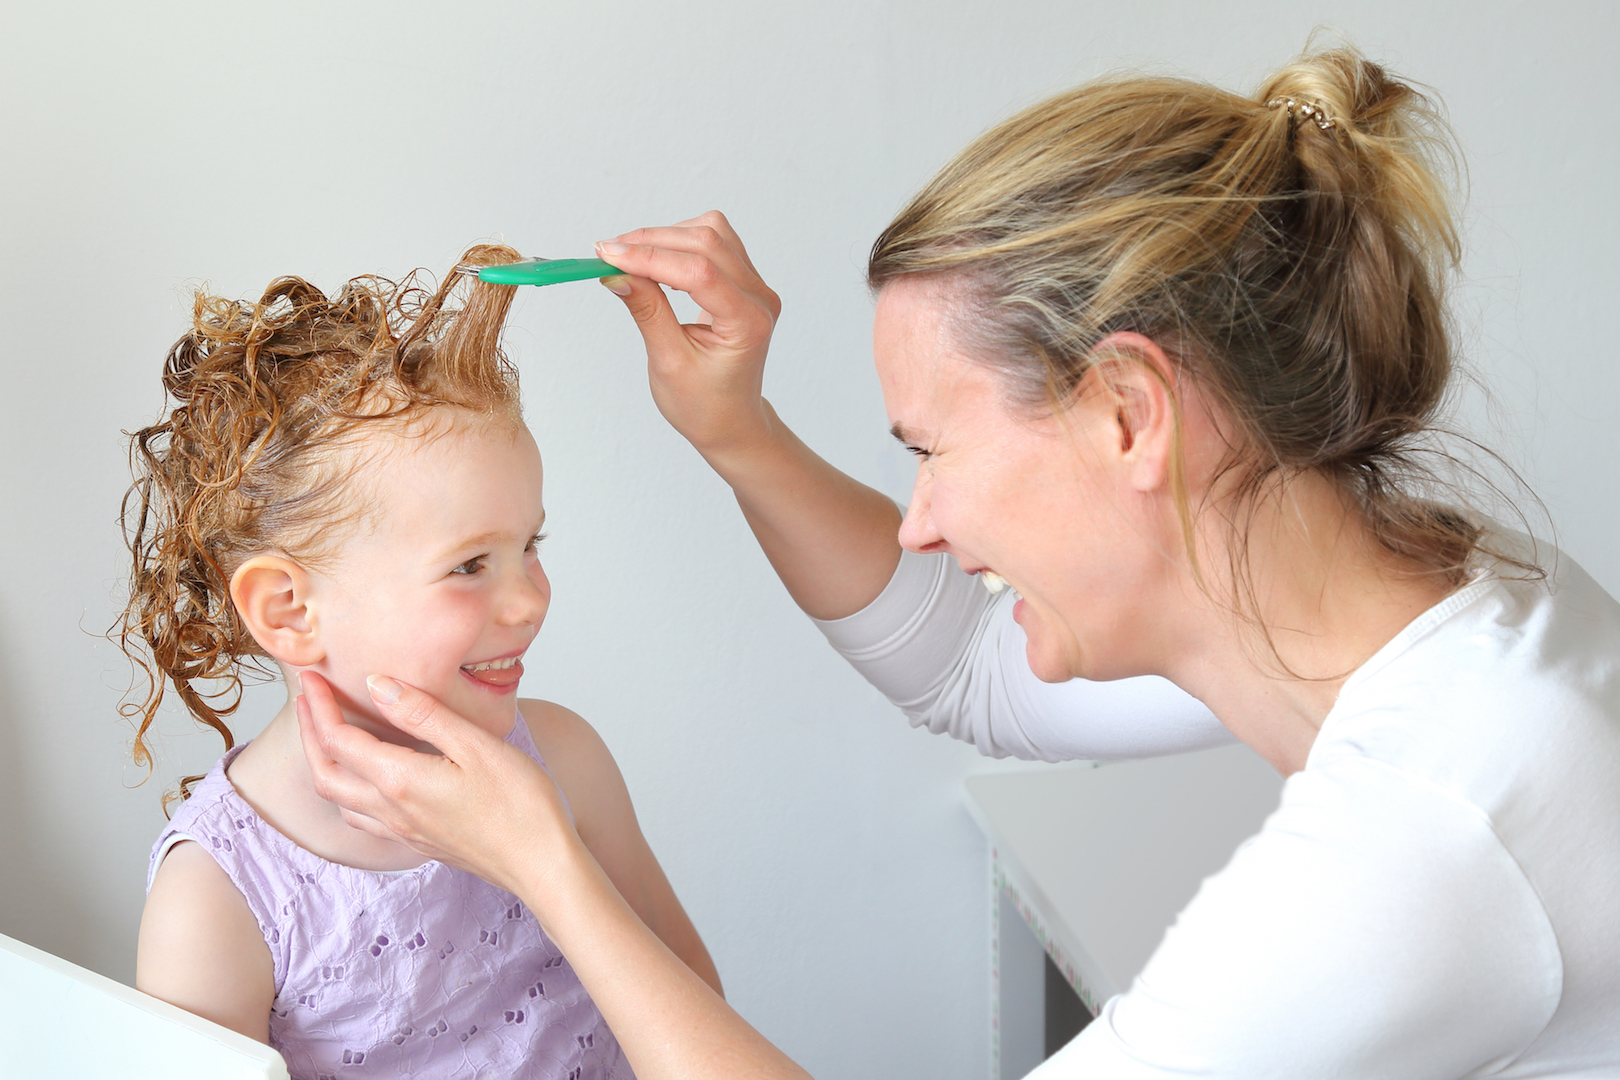 Combing Lice and Nits